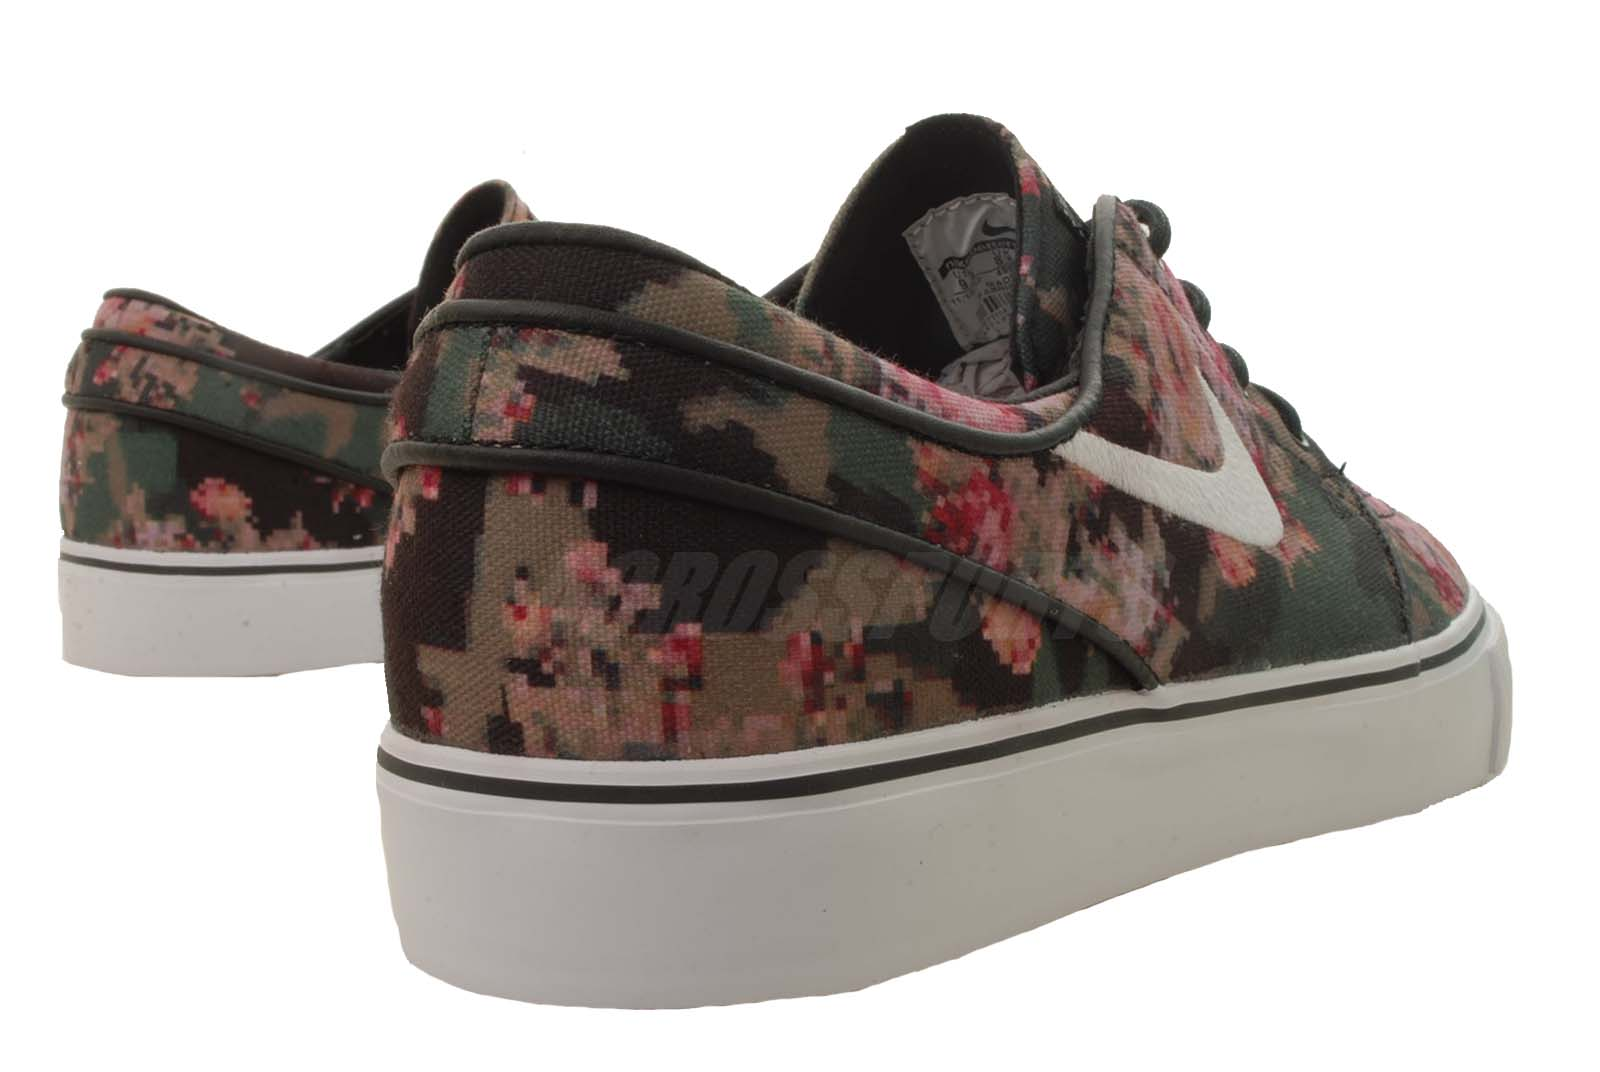 outlet store 2e615 37a47 Outdoor Sports Clothing, Shoes   Accessories Nike Zoom Stefan Janoski PR  Premium Digi Floral Skate Boarding Shoes 482972-900